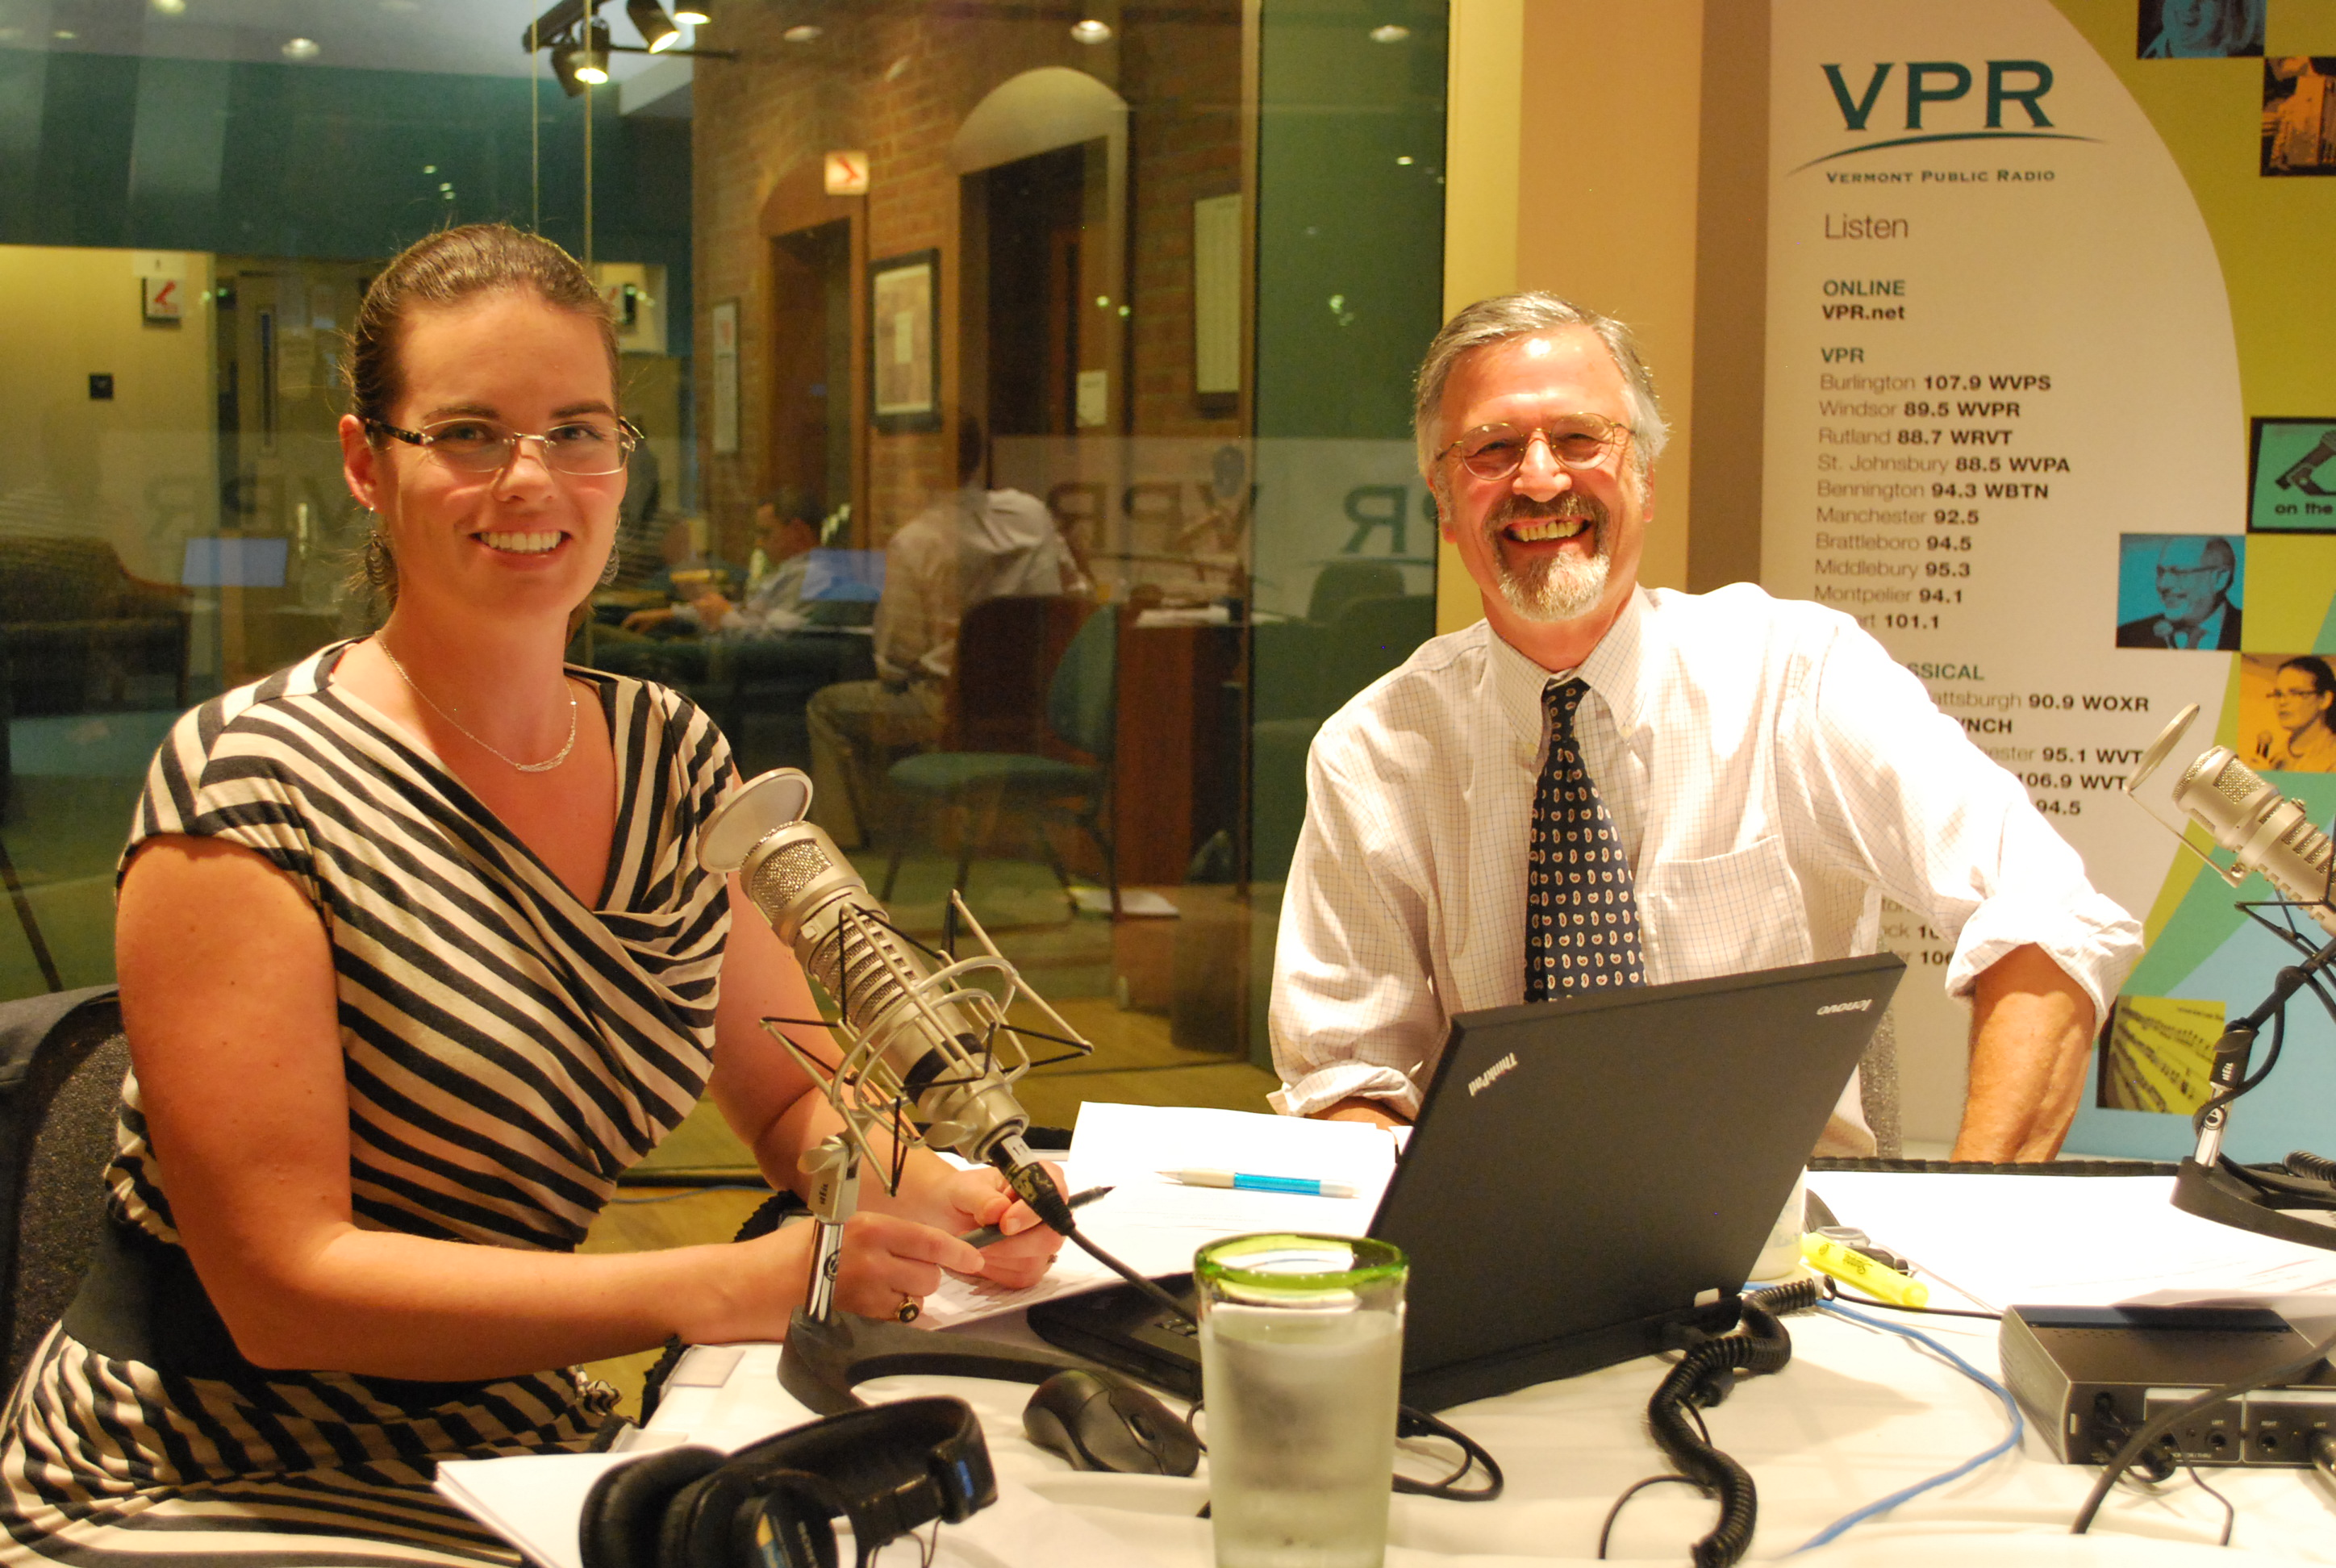 VPR's Jane Lindholm and Bob Kinzel will moderate the debates.